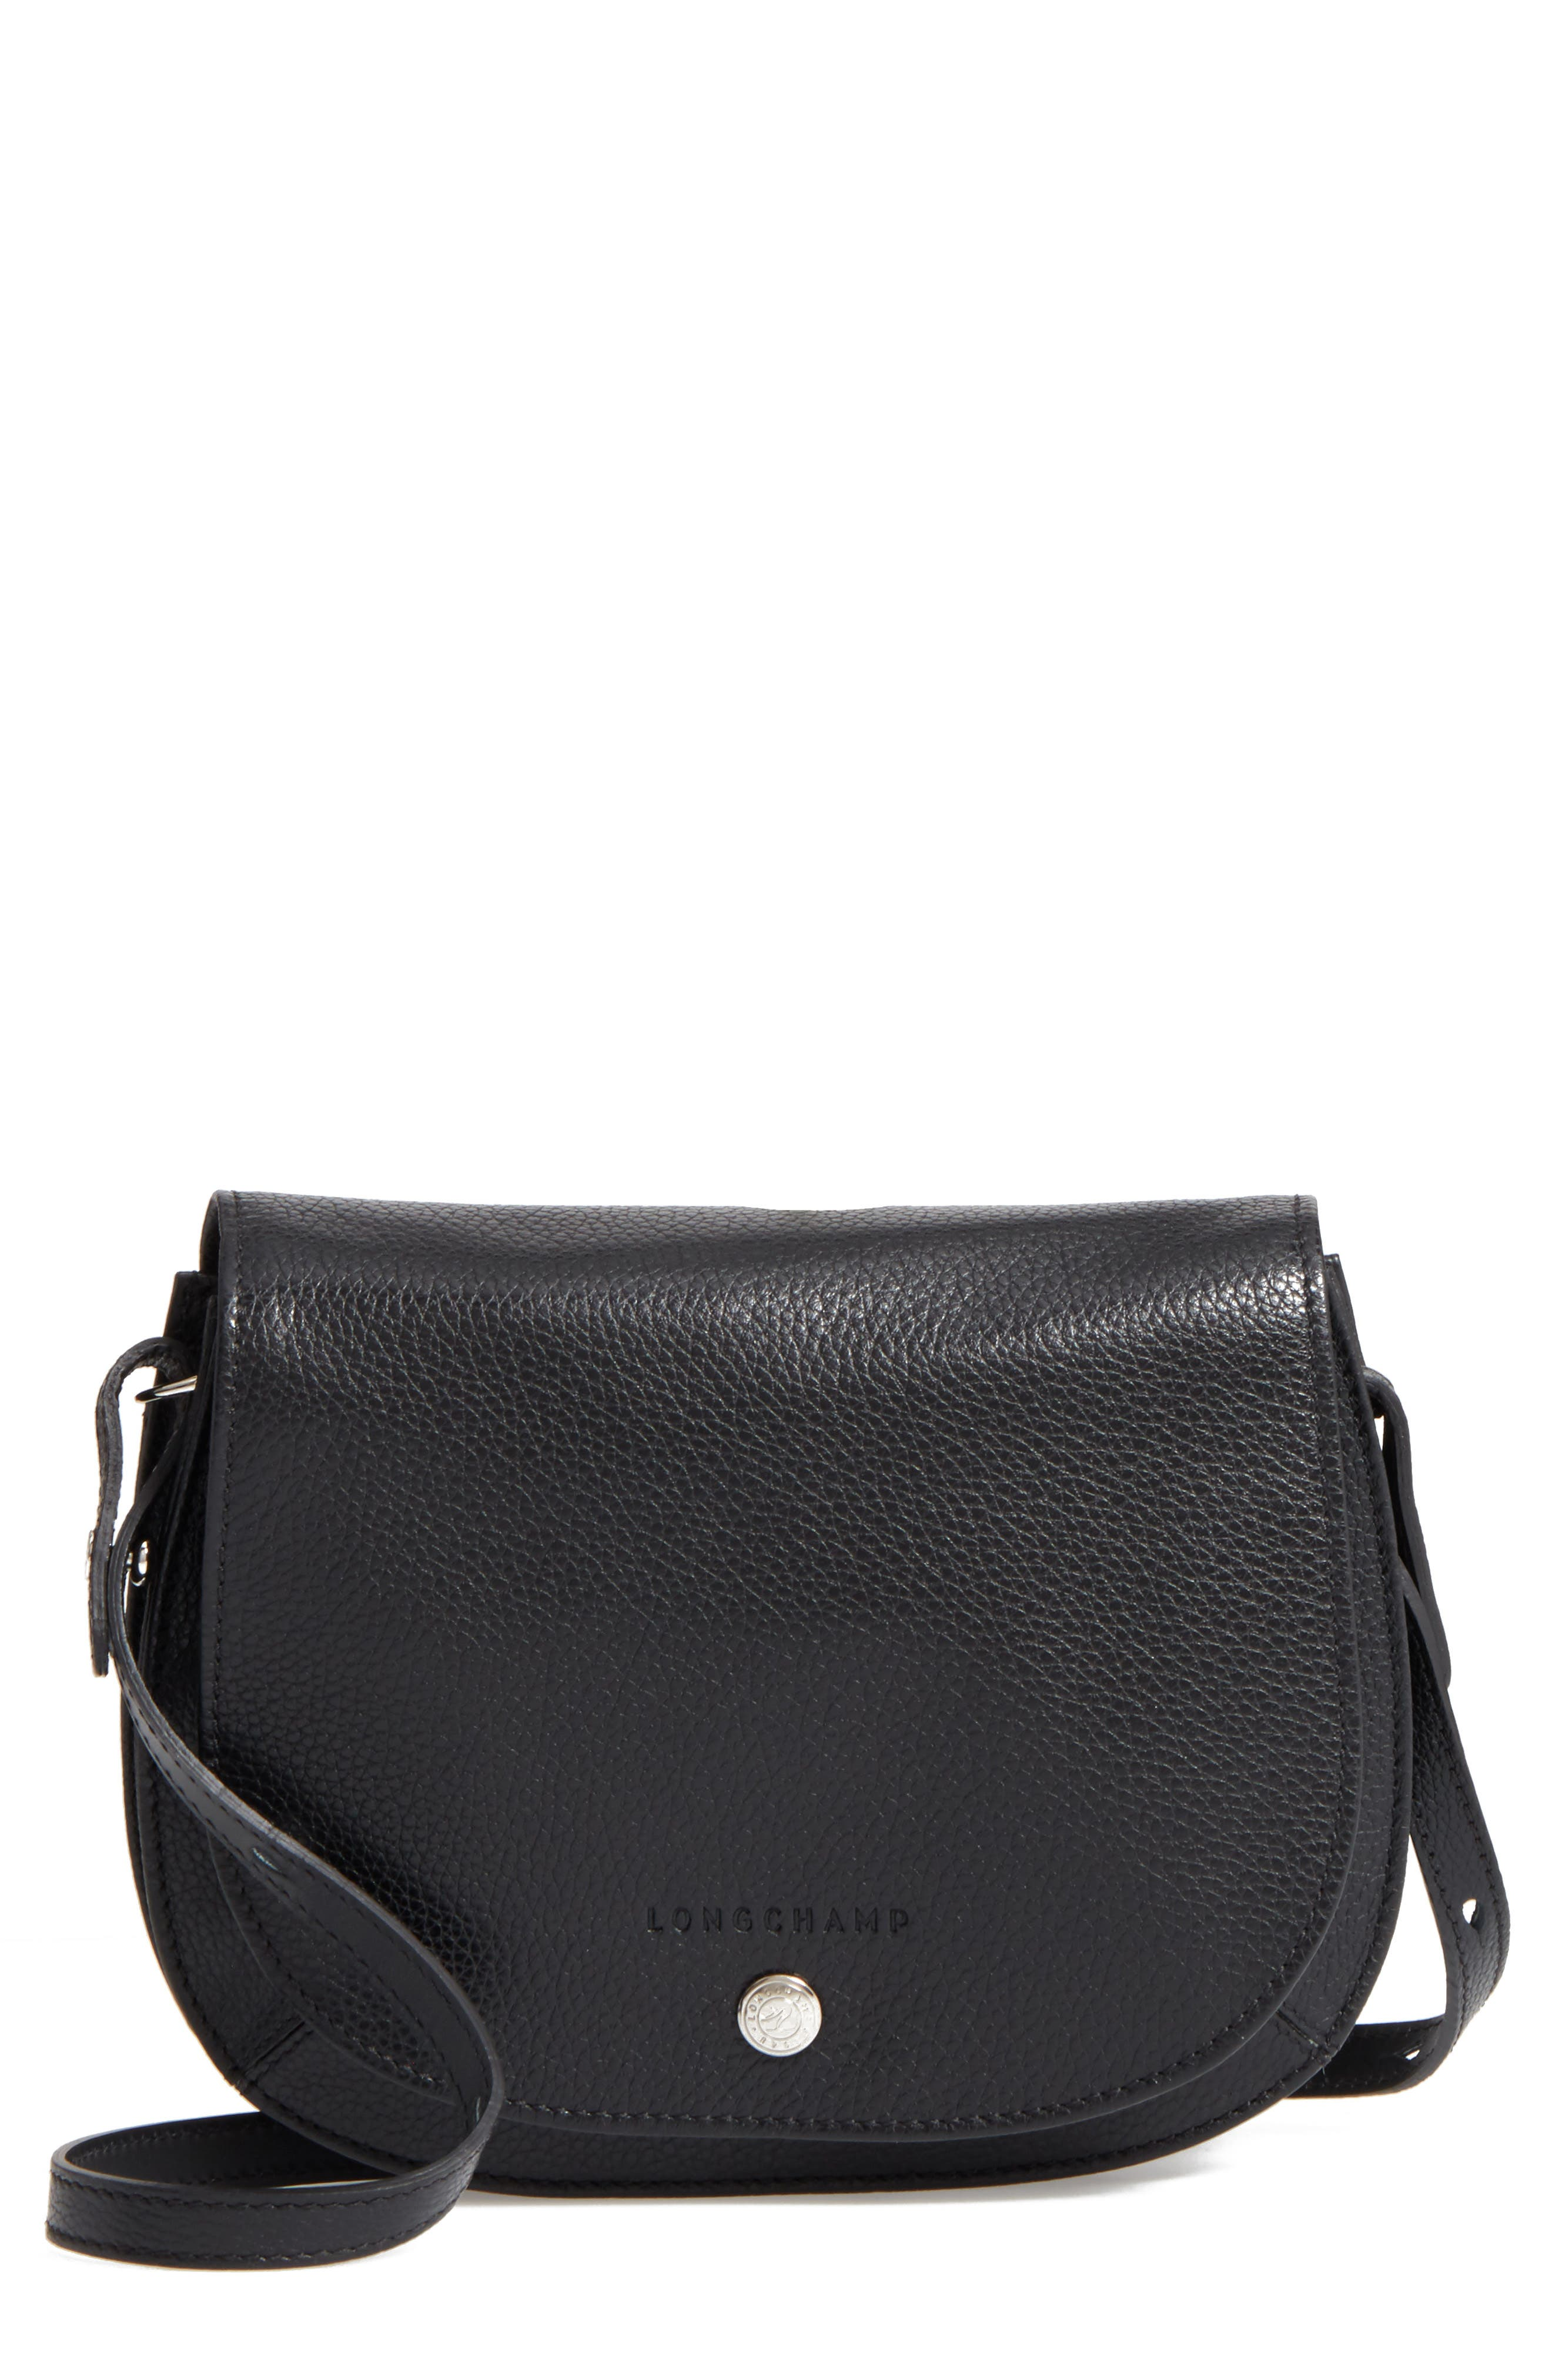 Longchamp Small Le Foulonne Leather Crossbody Bag